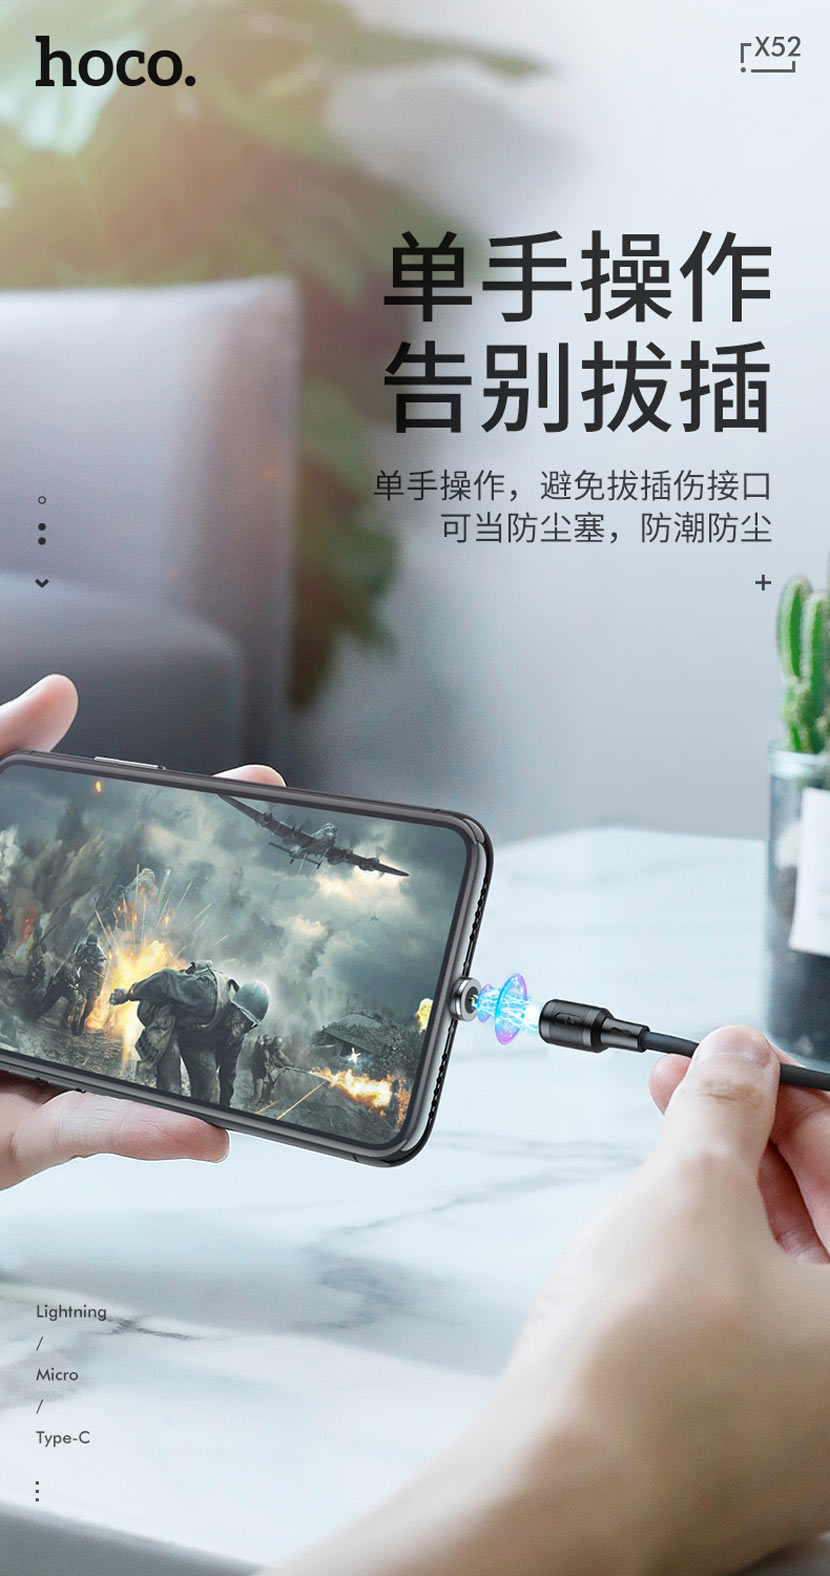 hoco news x52 sereno magnetic charging cable operation cn